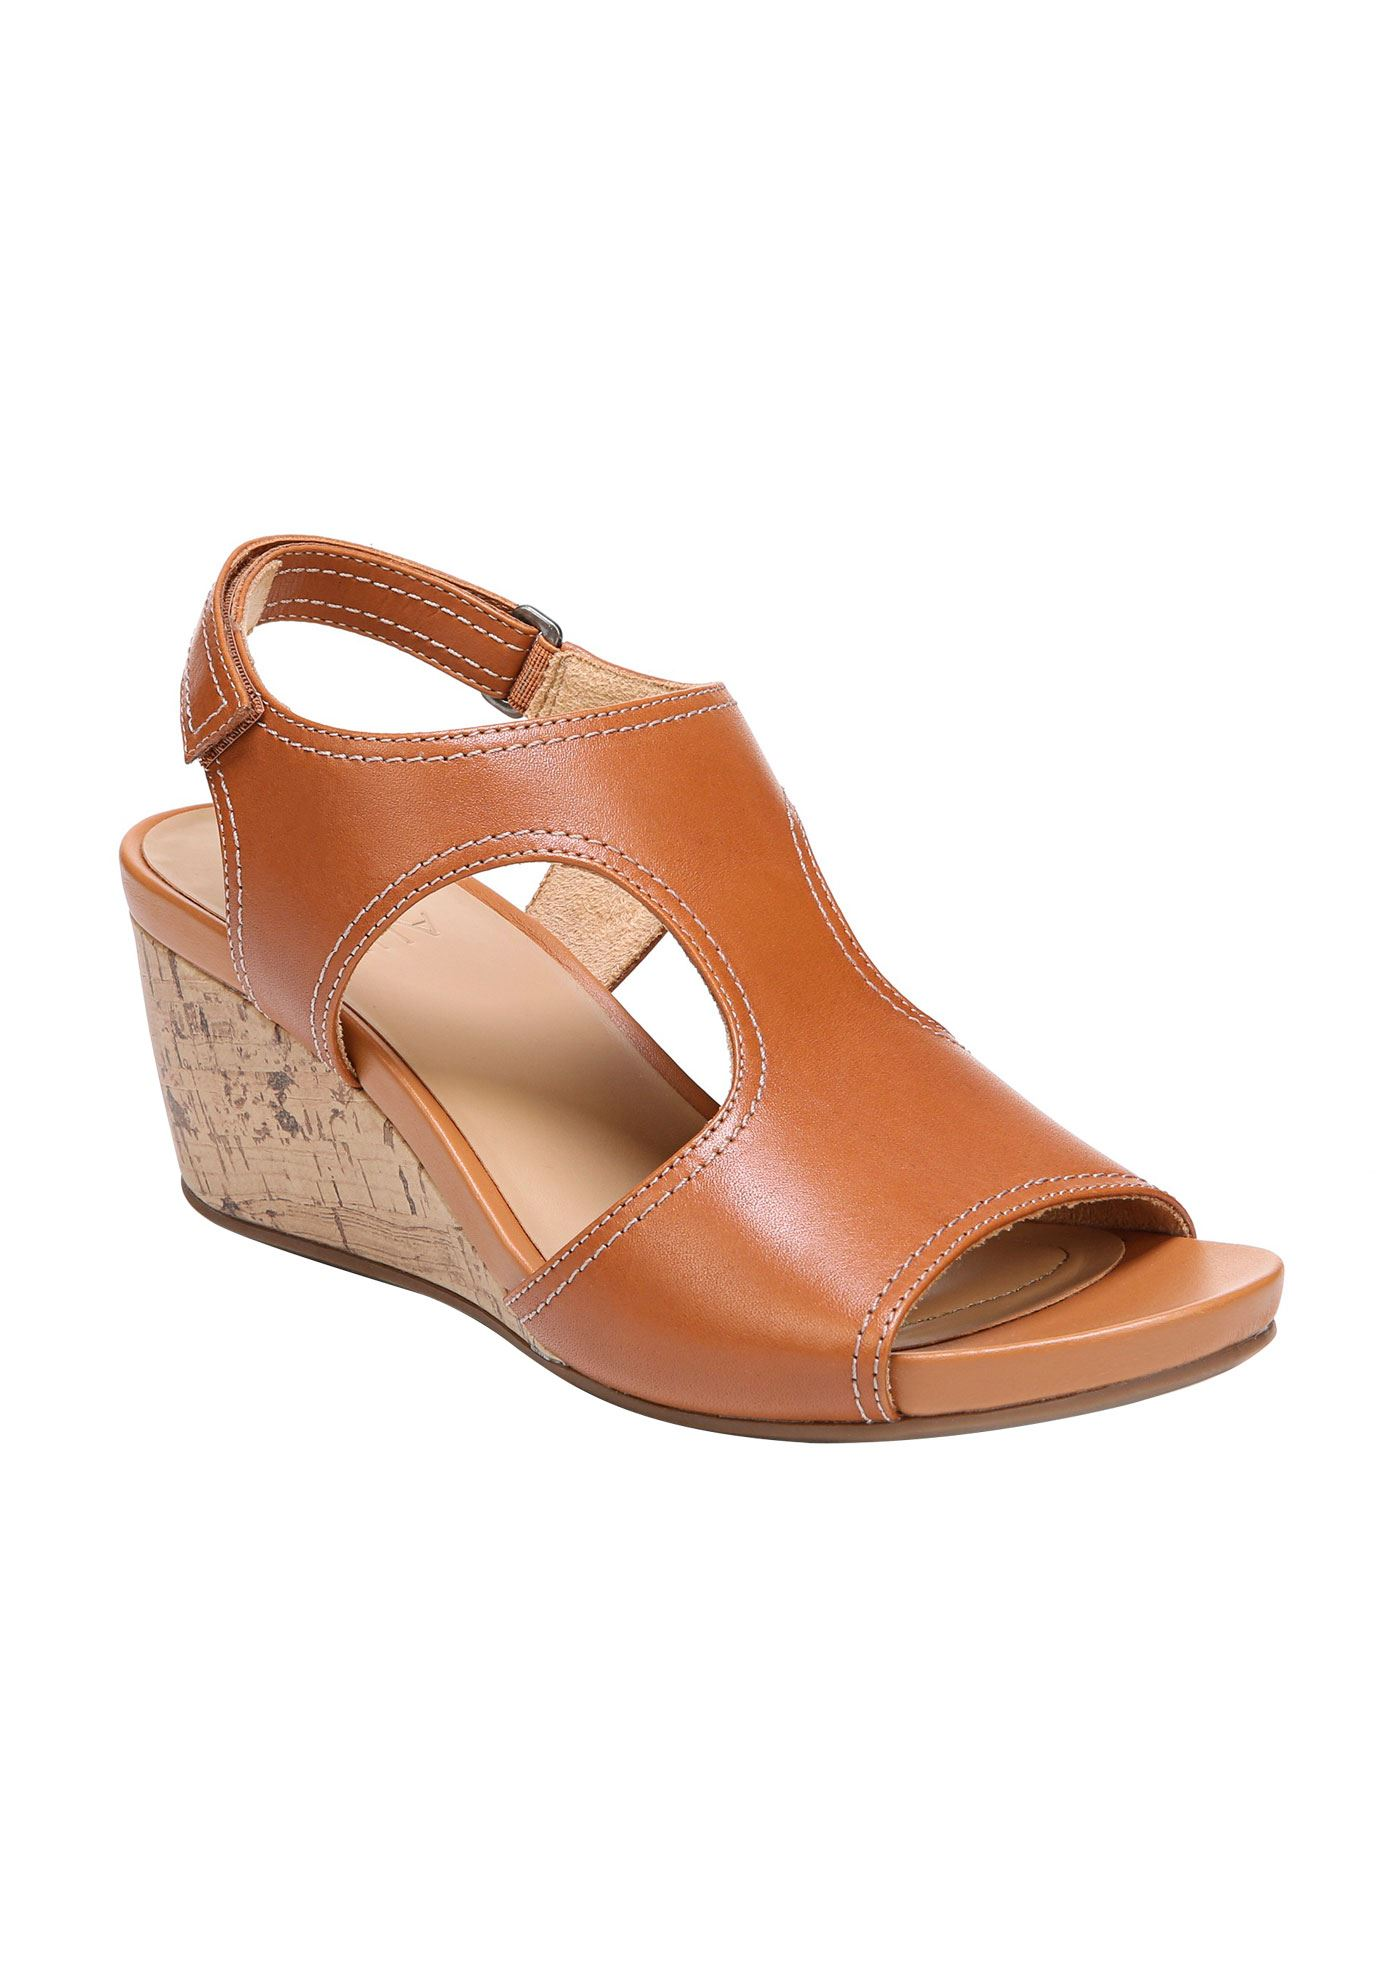 Cinda Wedges by Naturalizer®,